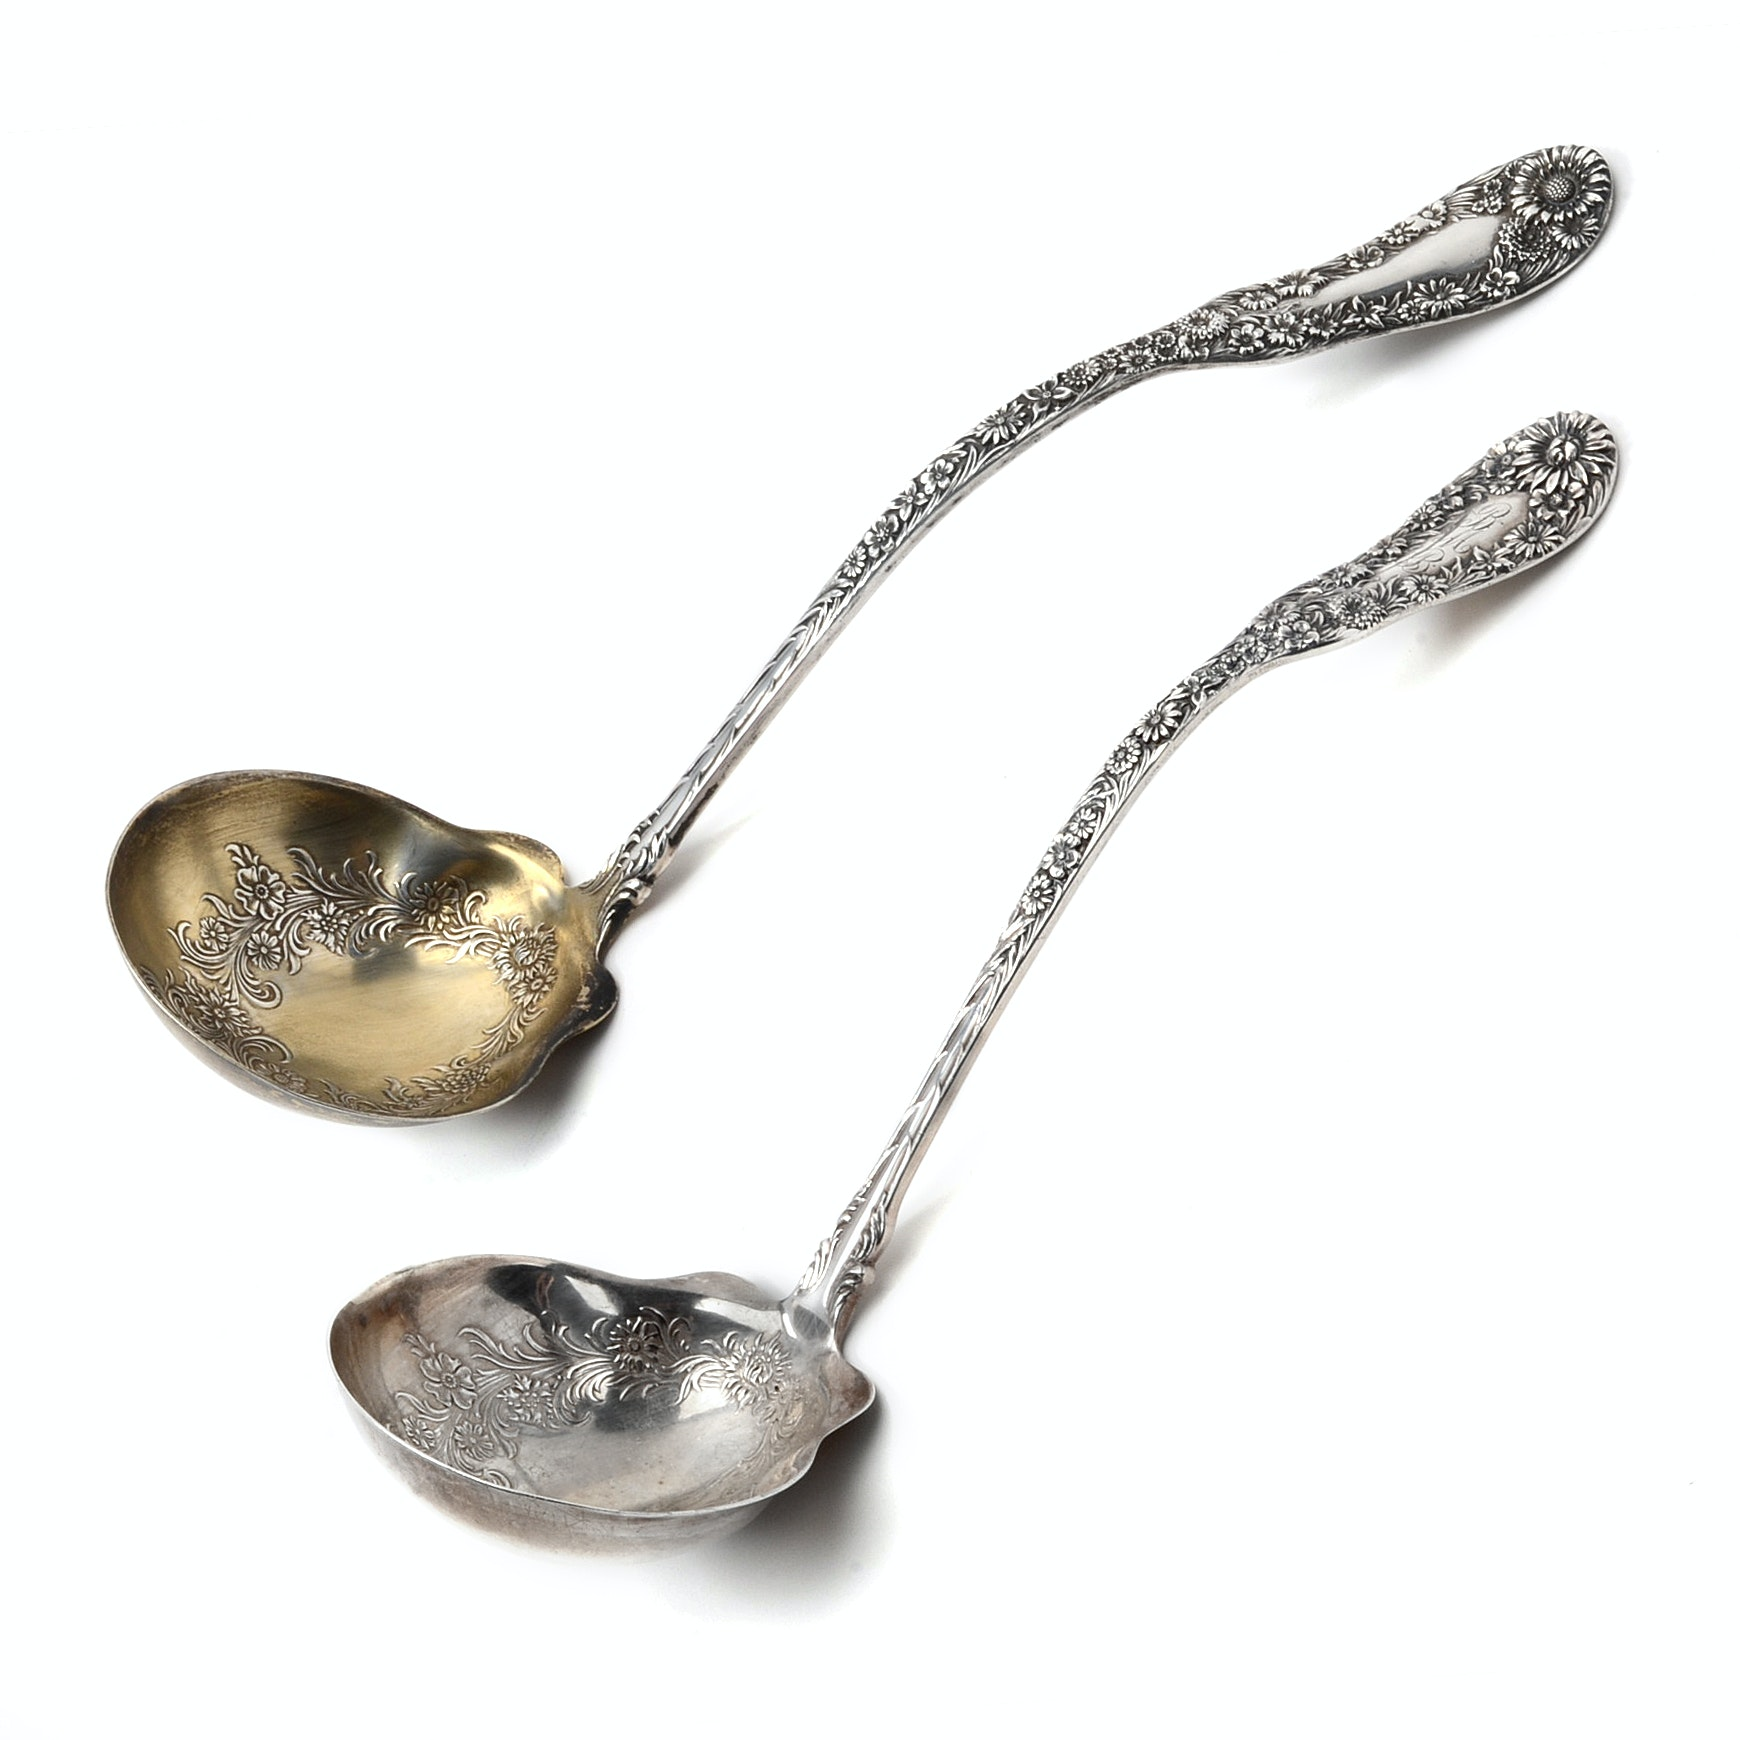 "Two Antique Dominick & Haff Sterling Silver Ladles in Floral Pattern ""No. 10"""